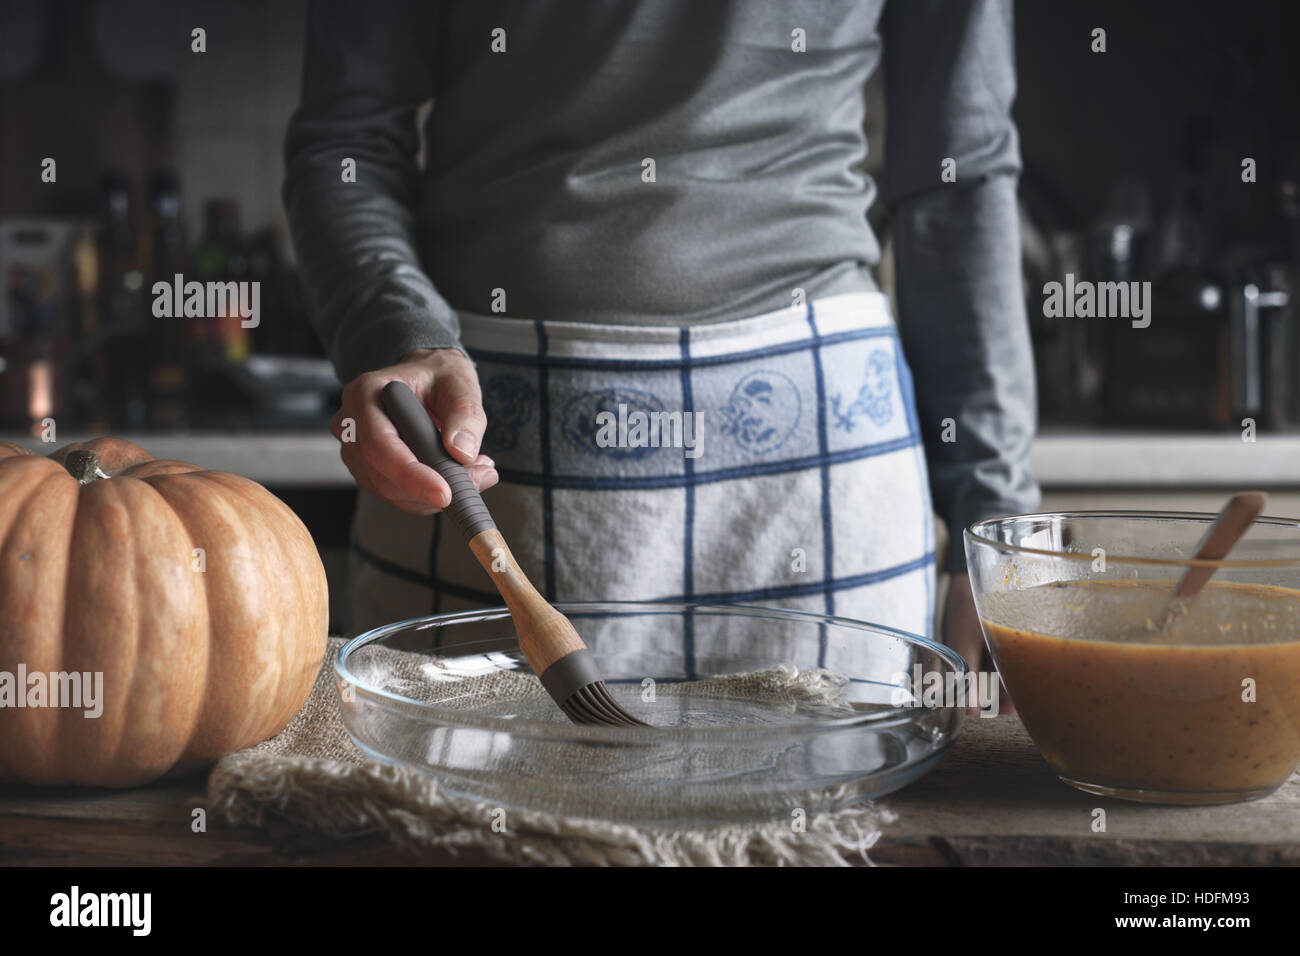 Oiling the backing dish for pumpkin dump cake - Stock Image